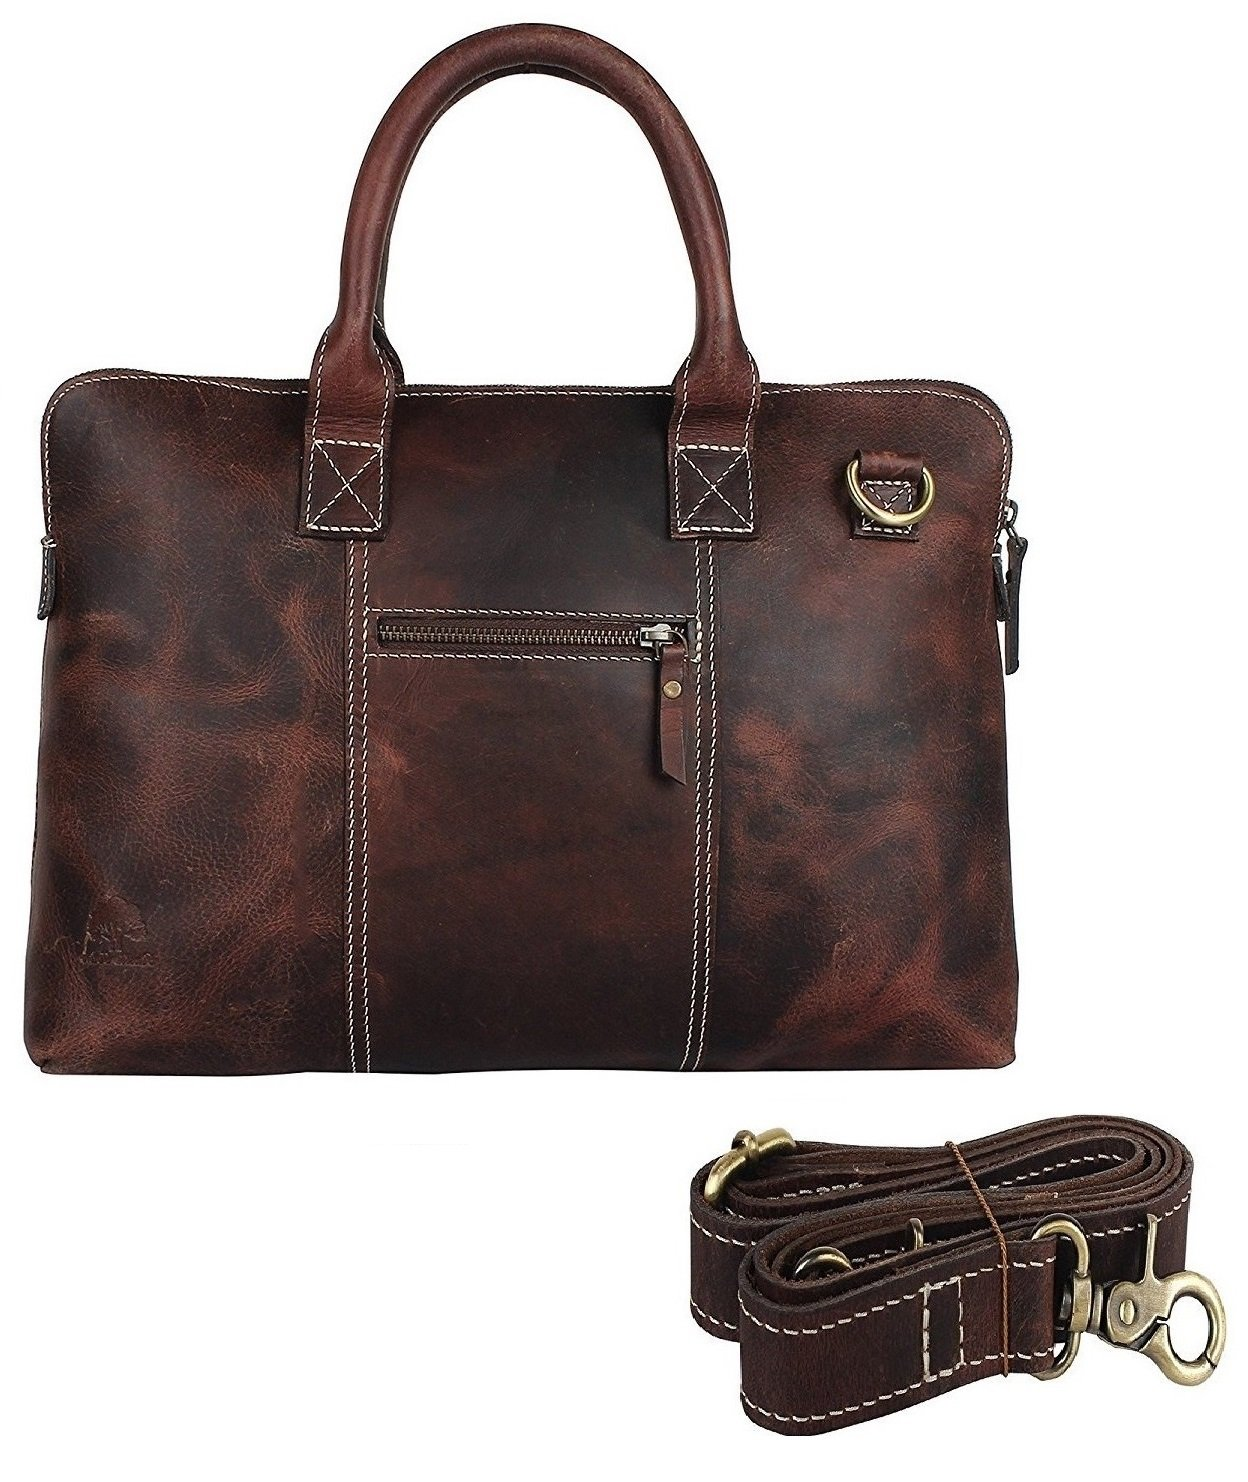 14 inch Genuine Leather Briefcase Bag - Crossbody Laptop Satchel by Rustic Town